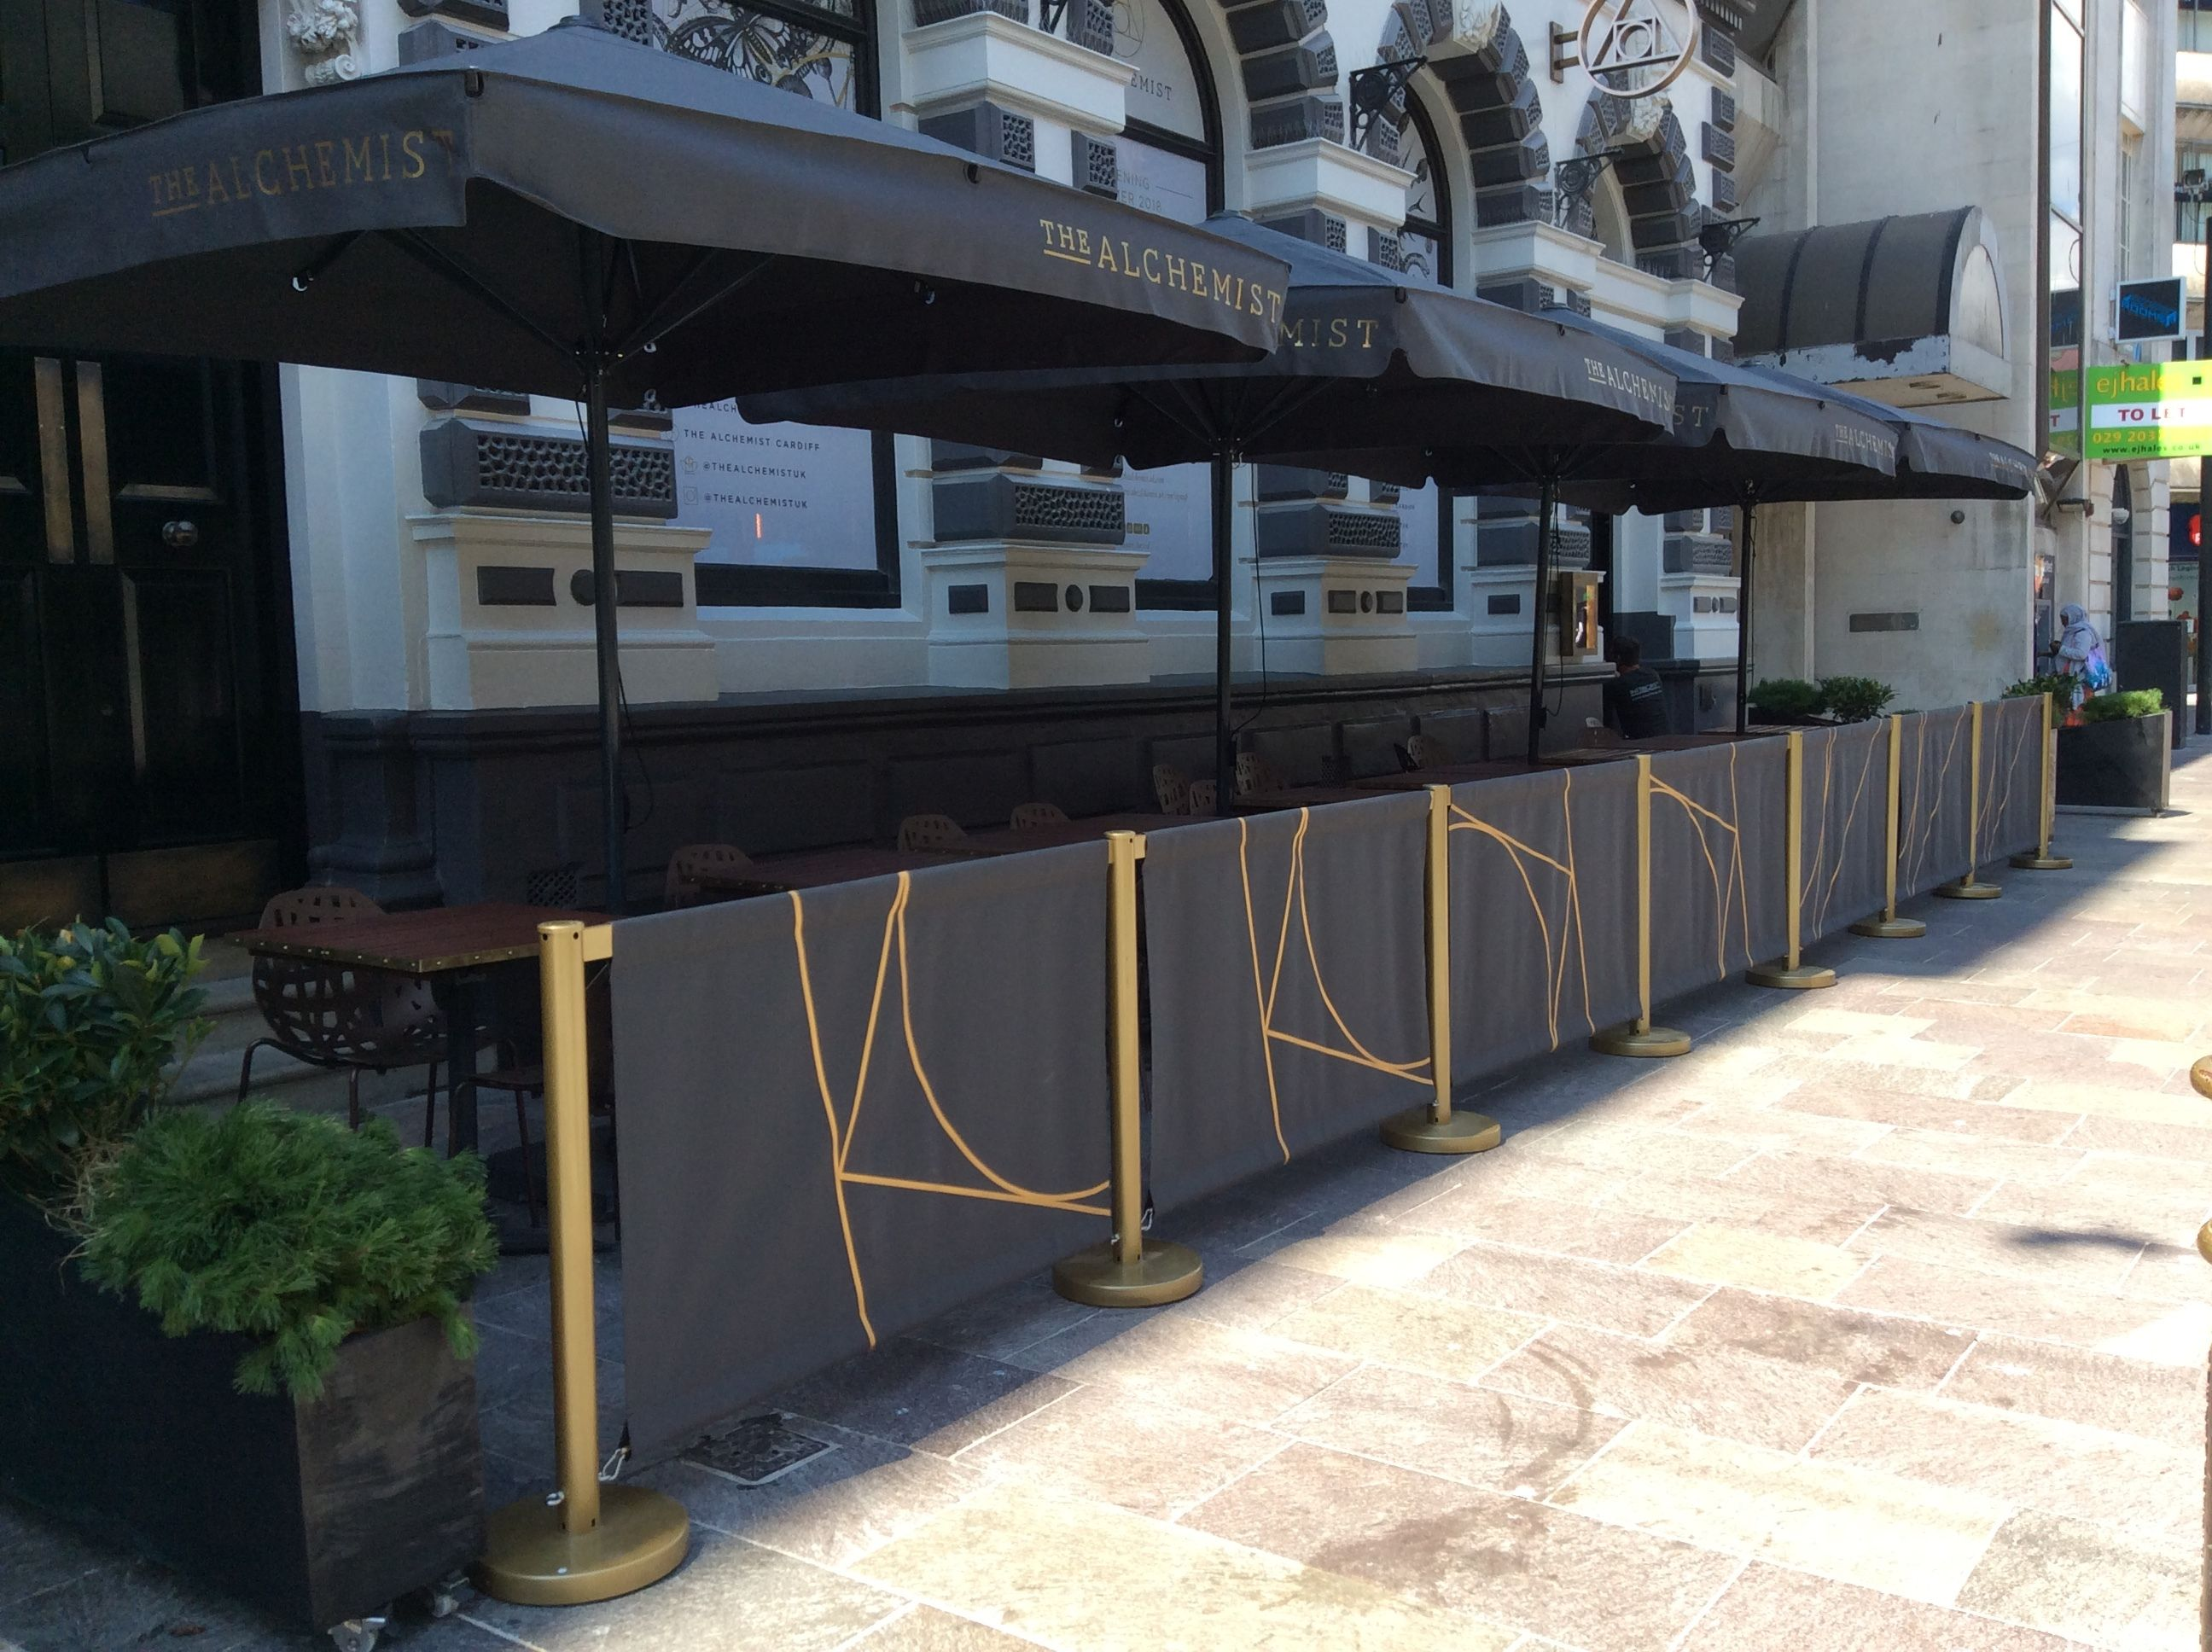 Cafe Barriers With Brass Effect Powder Coated Posts And Contract Grade Parasols By Breezefree Cafebarriers Caf Rooftop Design Cafe Seating Restaurant Seating